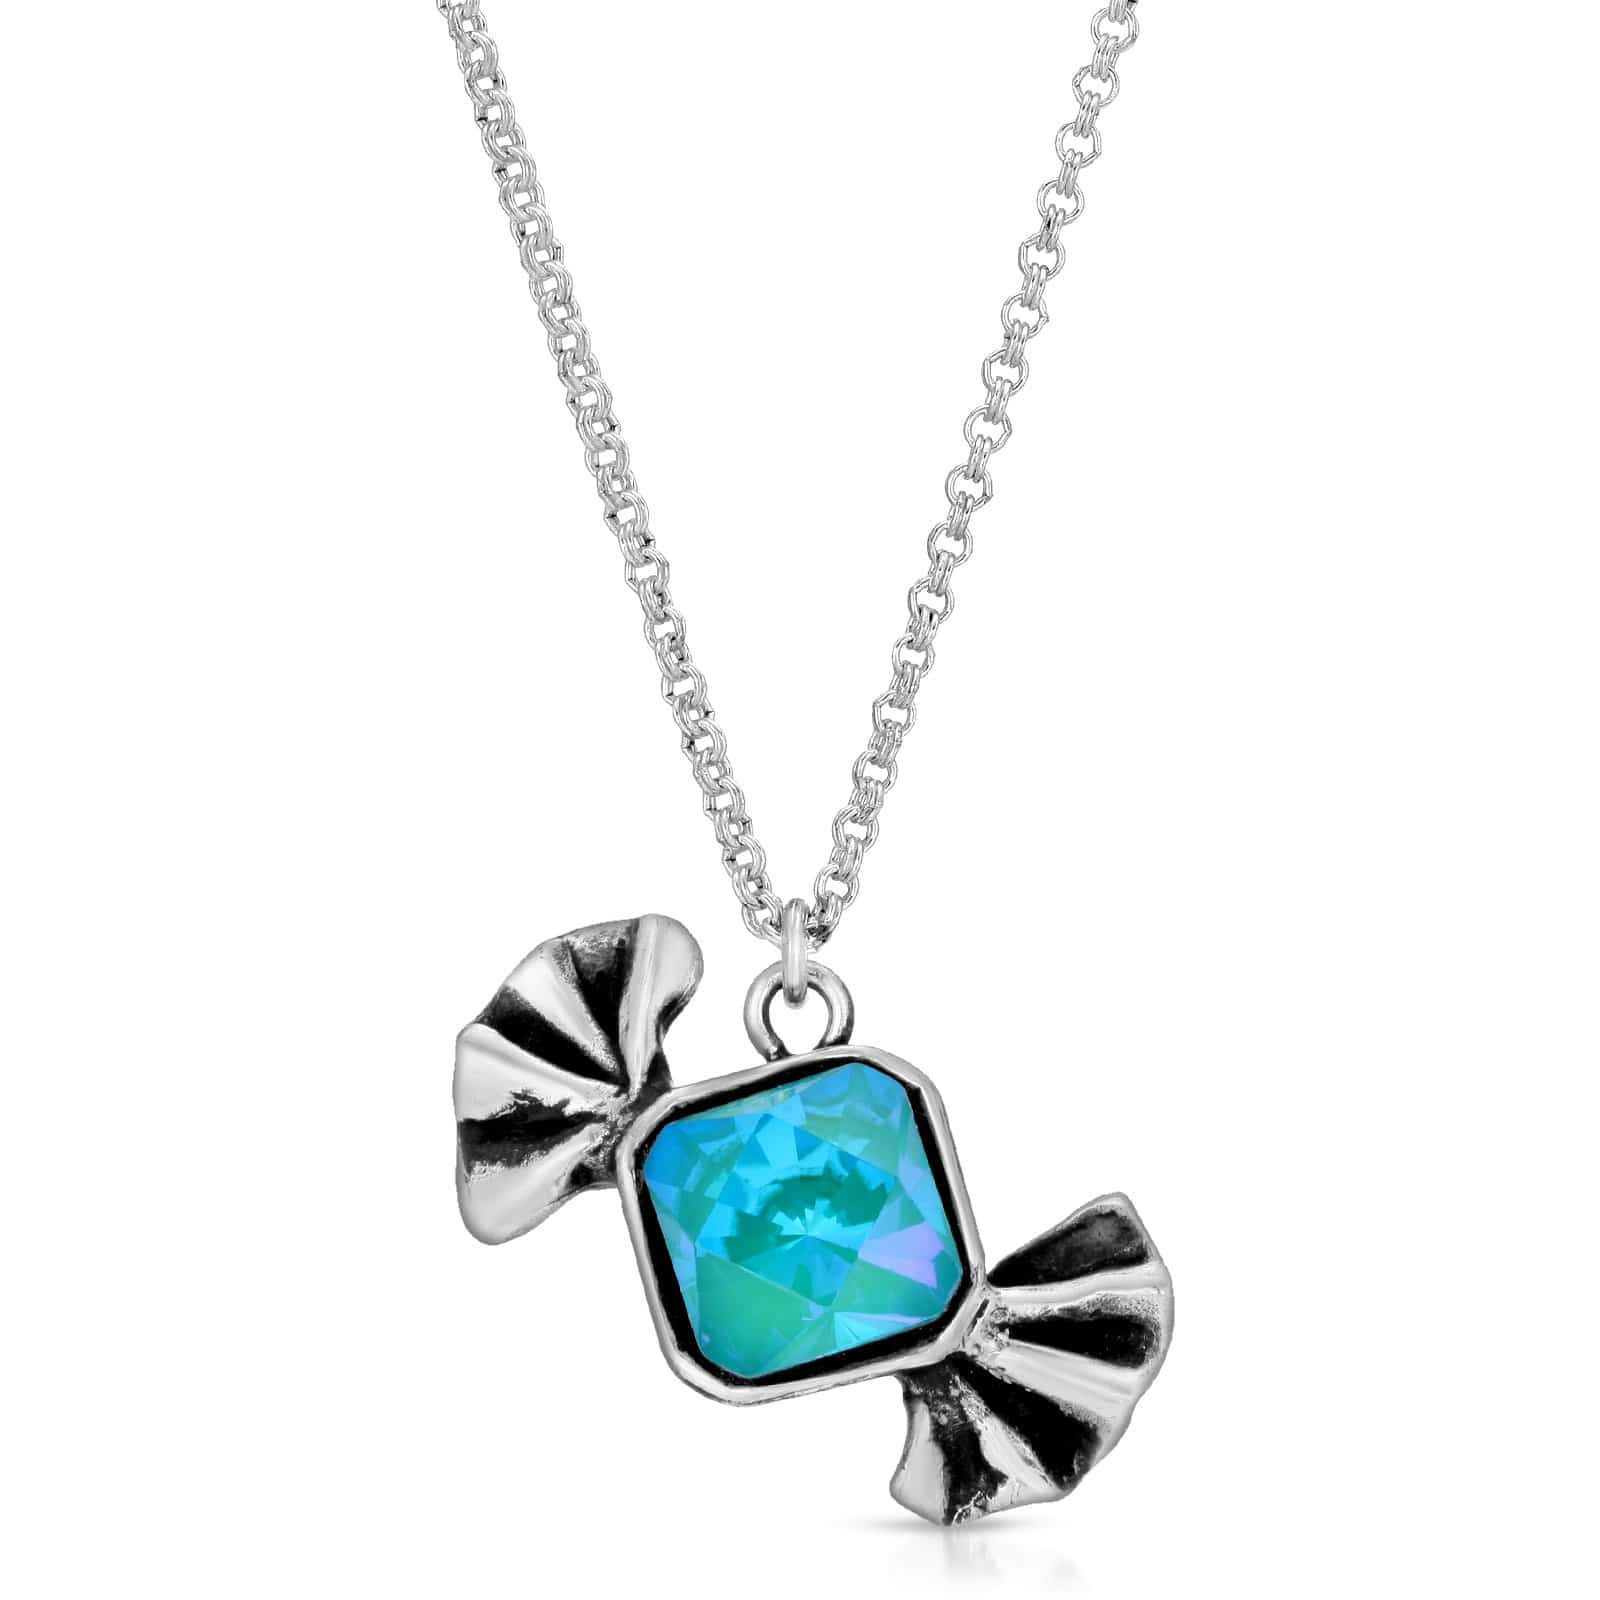 The W Brothers Premium Grade A 925 Sterling Silver Blue Zircon BlueOpal Bow-Tie Candy Pendant. Each distinct candy pendant is hand-selected & set with tri-toned clarity Swarovski crystals to enumerate a modern chest piece for women. Available at www.thewbros.com